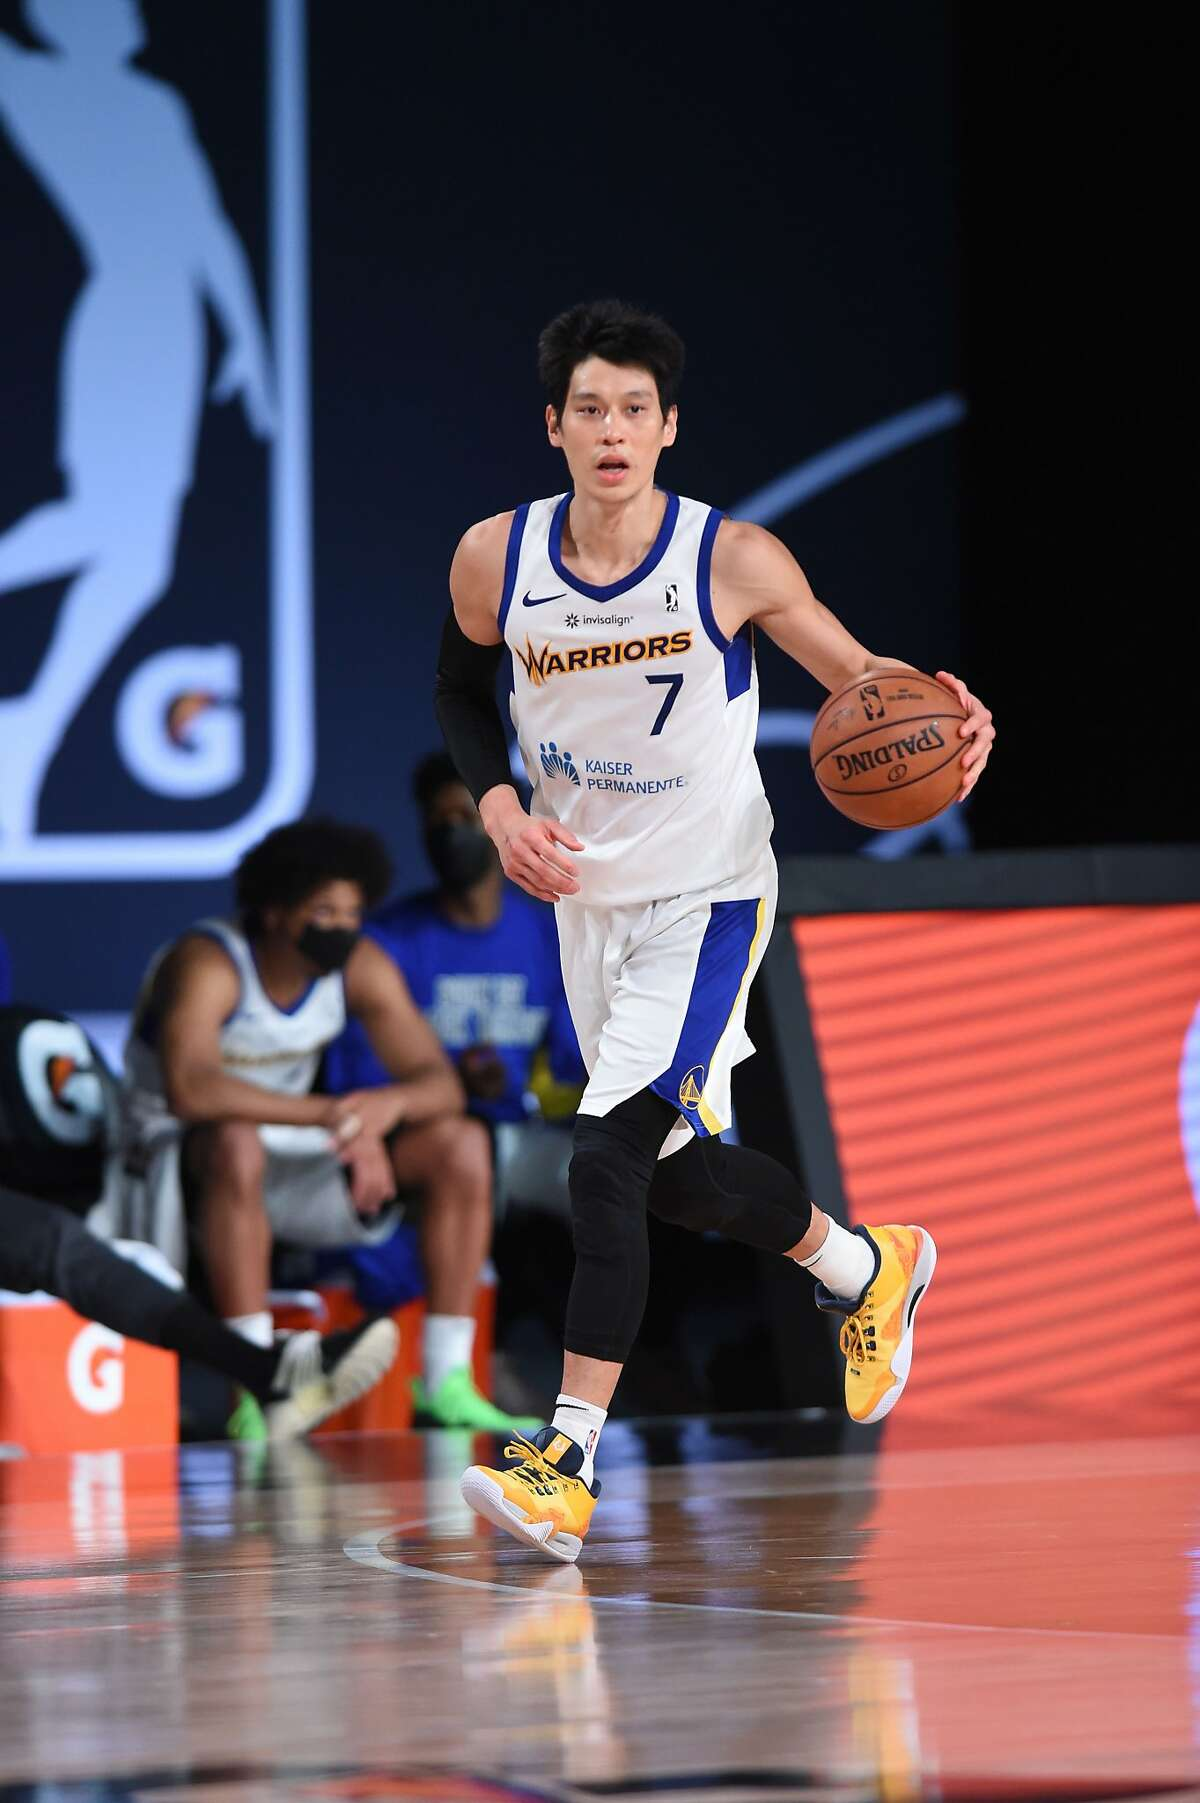 In five G League games this season, Jeremy Lin is averaging 19.6 points on 48.3% shooting (48.4% from 3-point range), 7.2 assists, 2.8 rebounds and 1.6 steals.